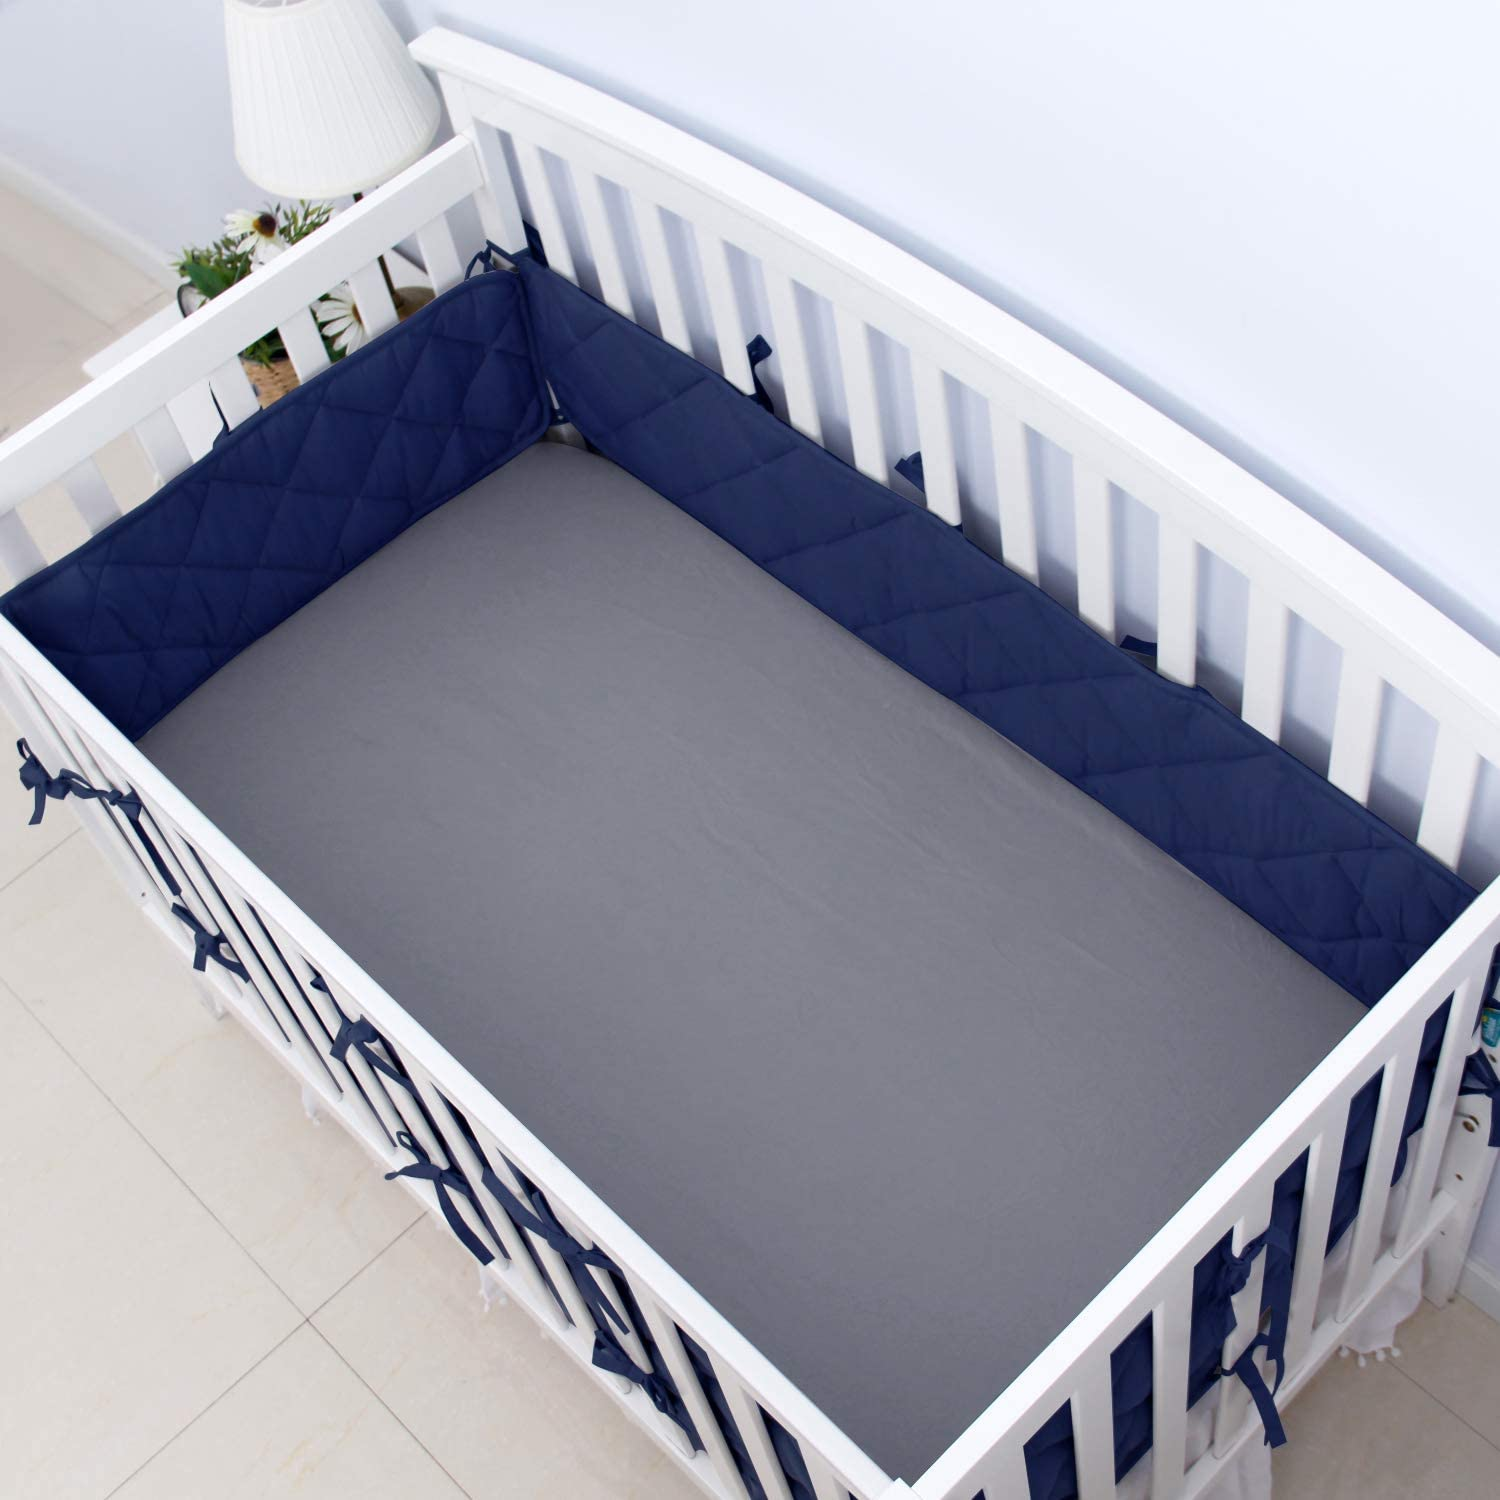 Crib Bumper Pads for Baby Crib Bedding, 52 x 28 Navy Blue Washable /& Durable Nursery Crib Liners Guard Protector for Boys Girls